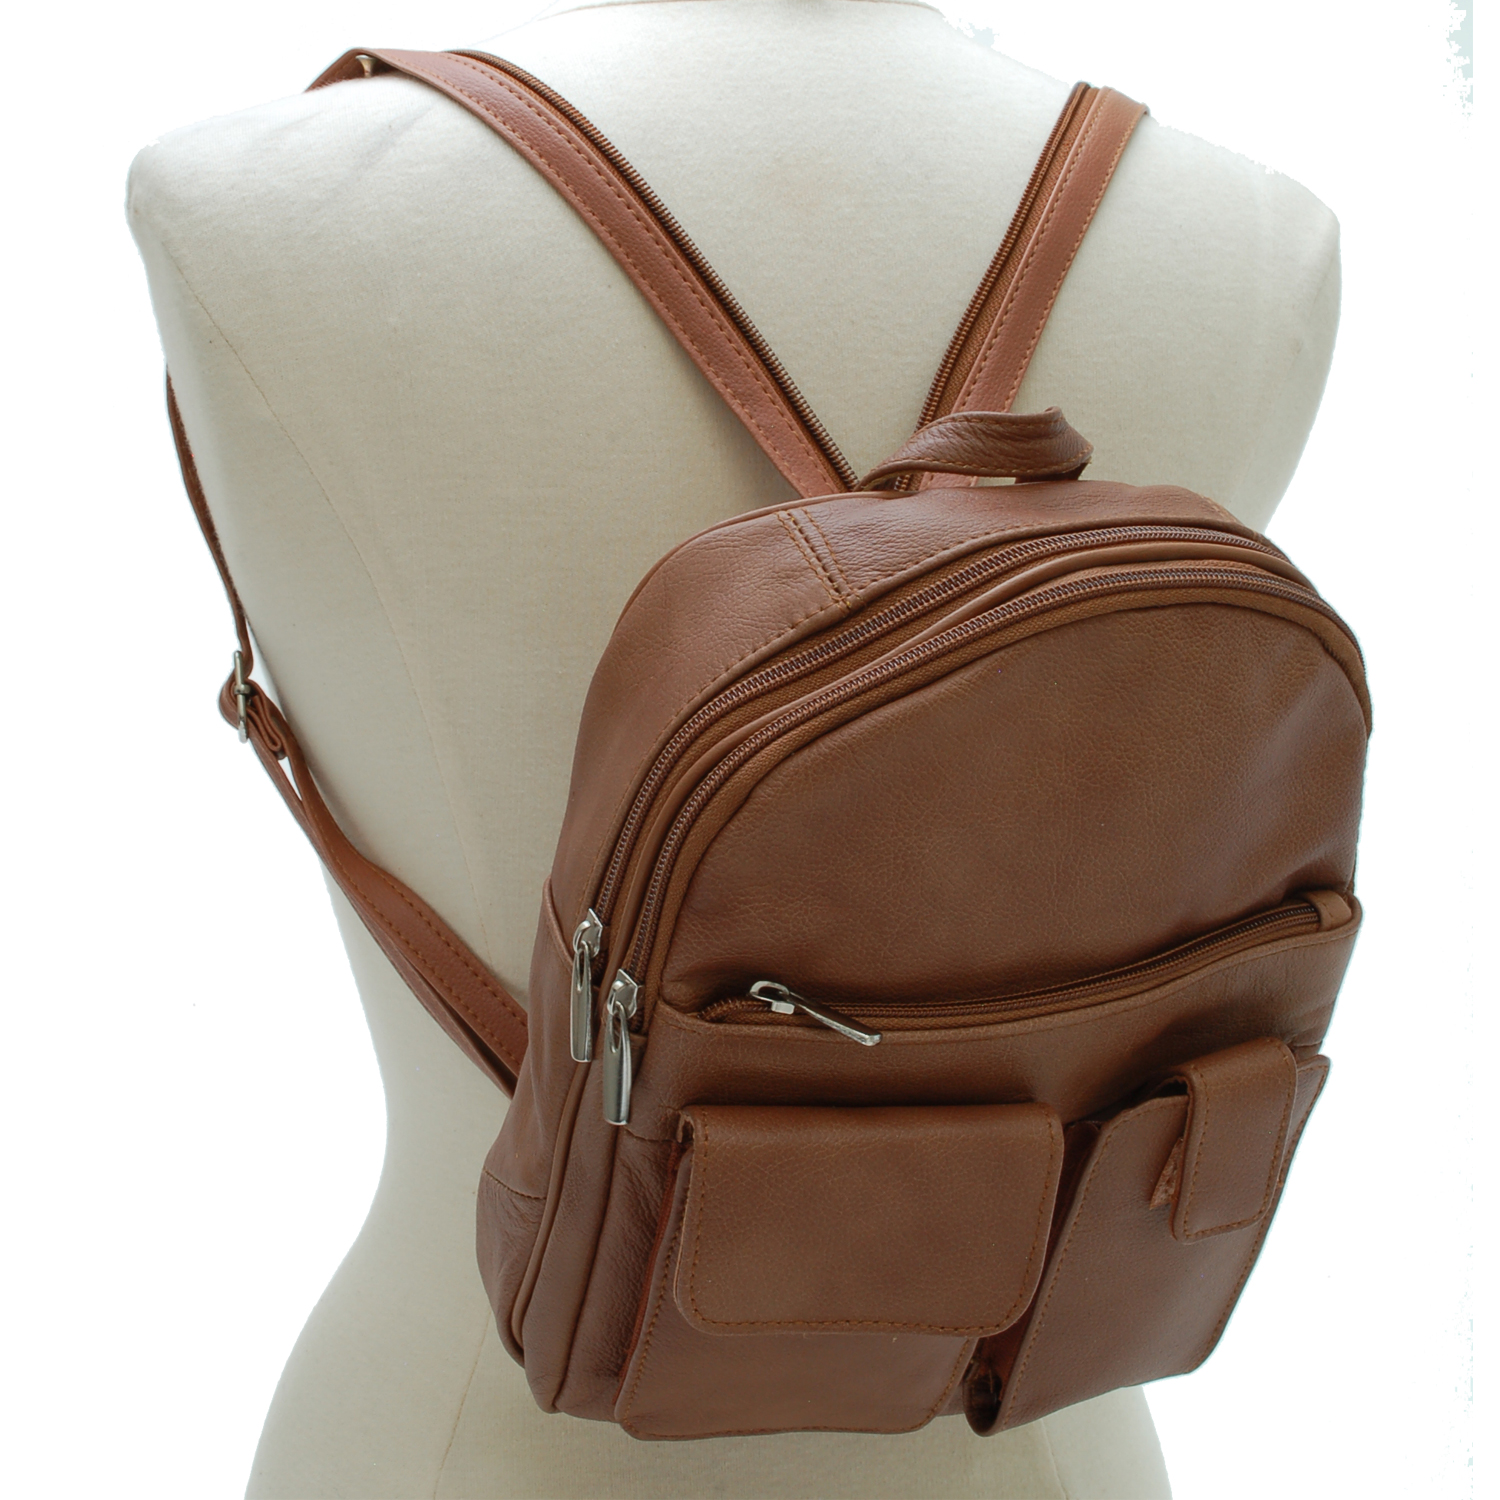 Whatever kind of over the shoulder style bag you need that even a man could wear and keep his dignity, here Jamin Leather has assembled a collection of over the shoulder bags including sling bags and backpacks to carry all your daily necessities.